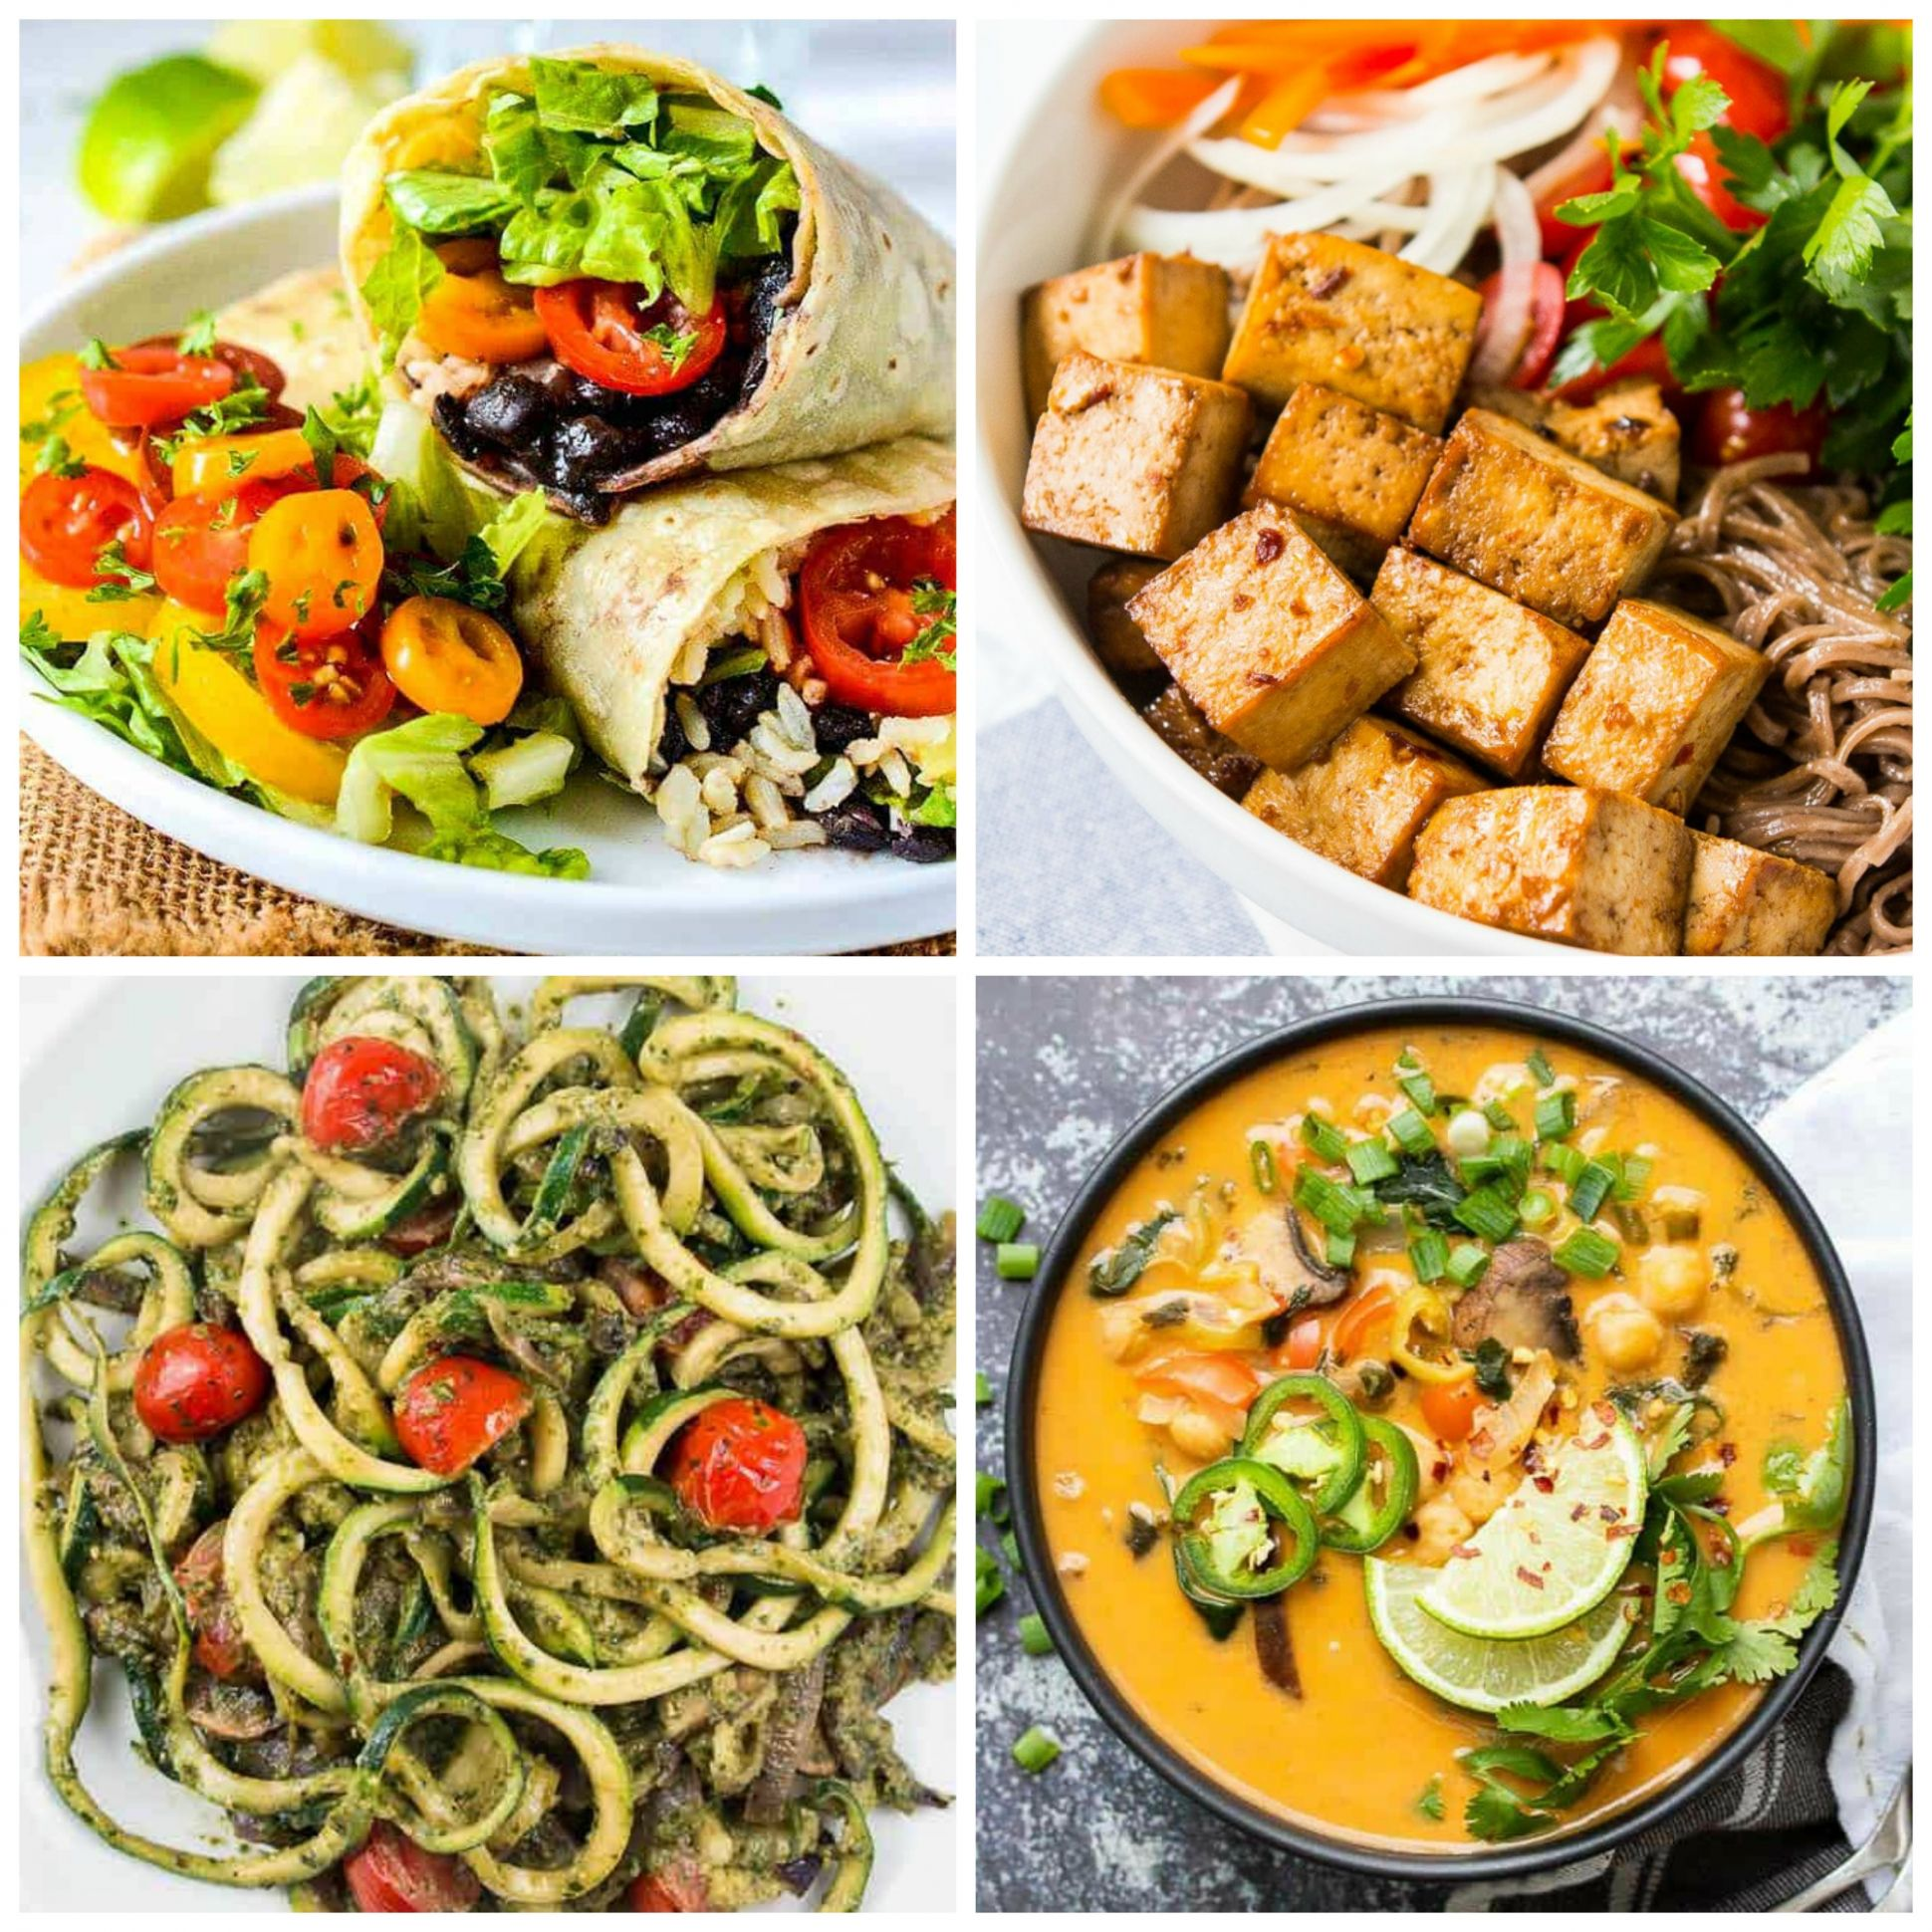 12 AMAZING Vegan Meals for Weight Loss (Gluten-Free & Low-Calorie) - Recipes For Weight Loss Vegetarian